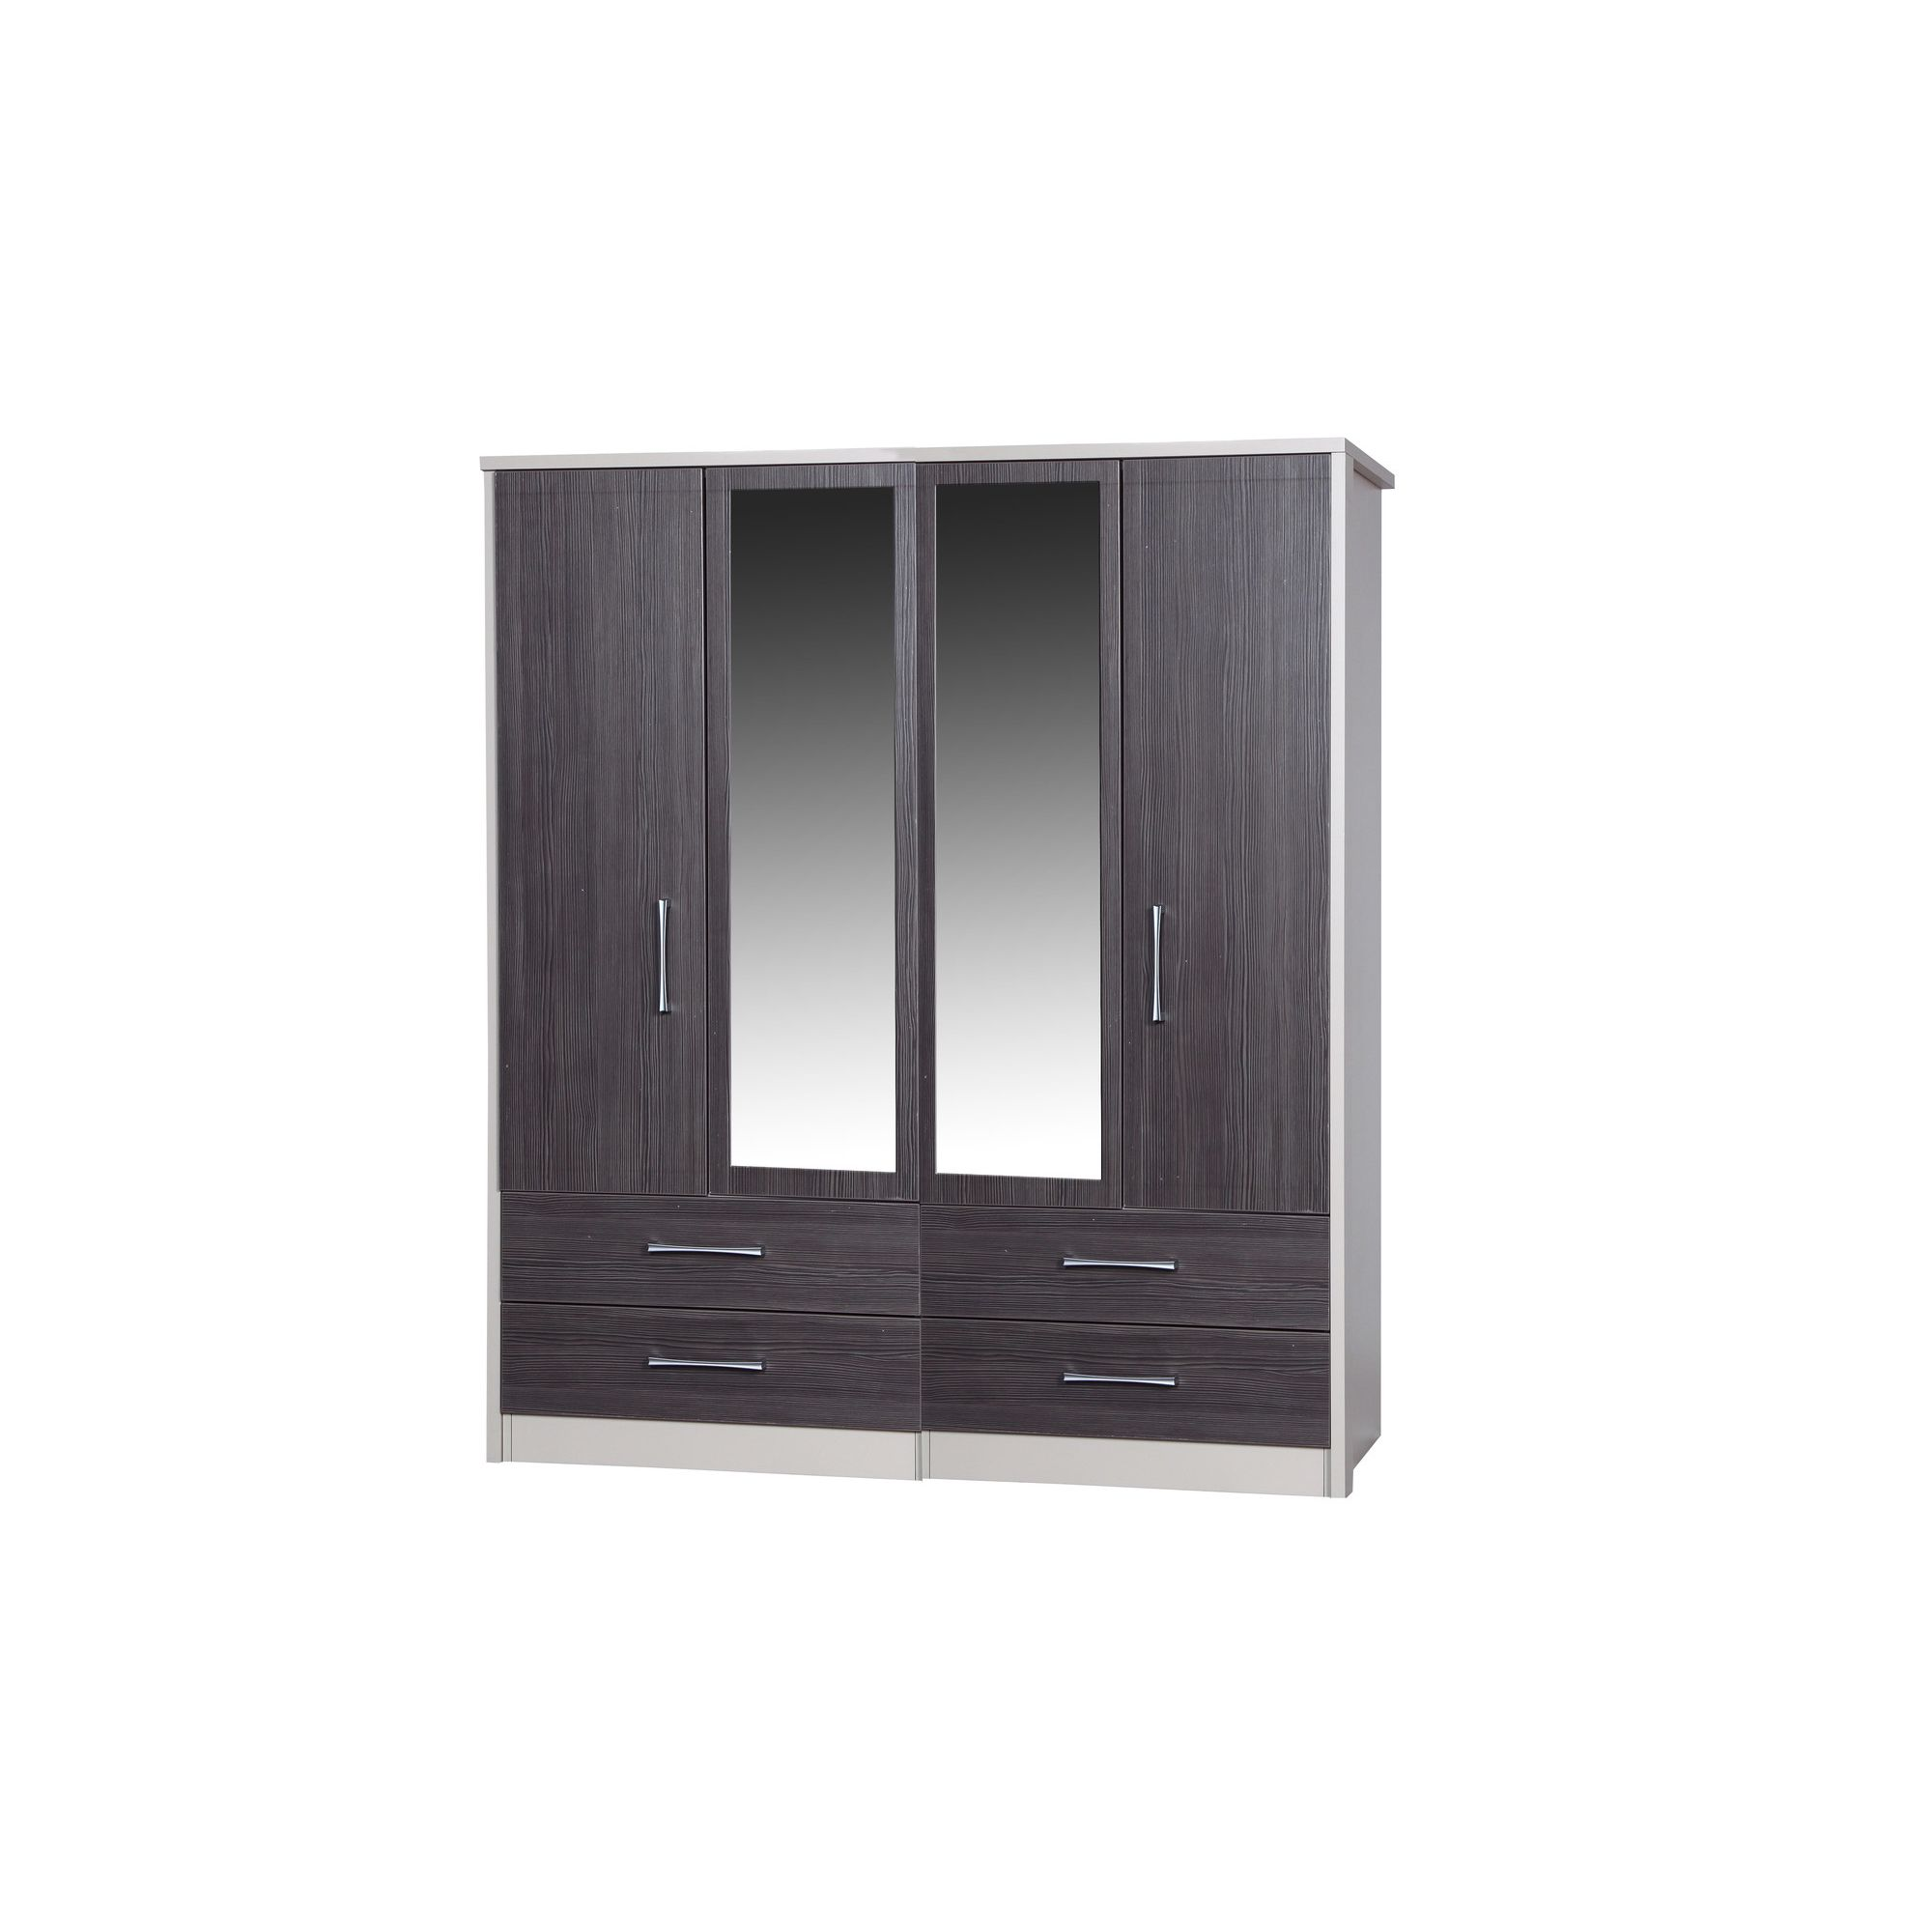 Alto Furniture Avola 4 Door Combi Wardrobe with 2 Mirrors - Cream Carcass With Grey Avola at Tescos Direct